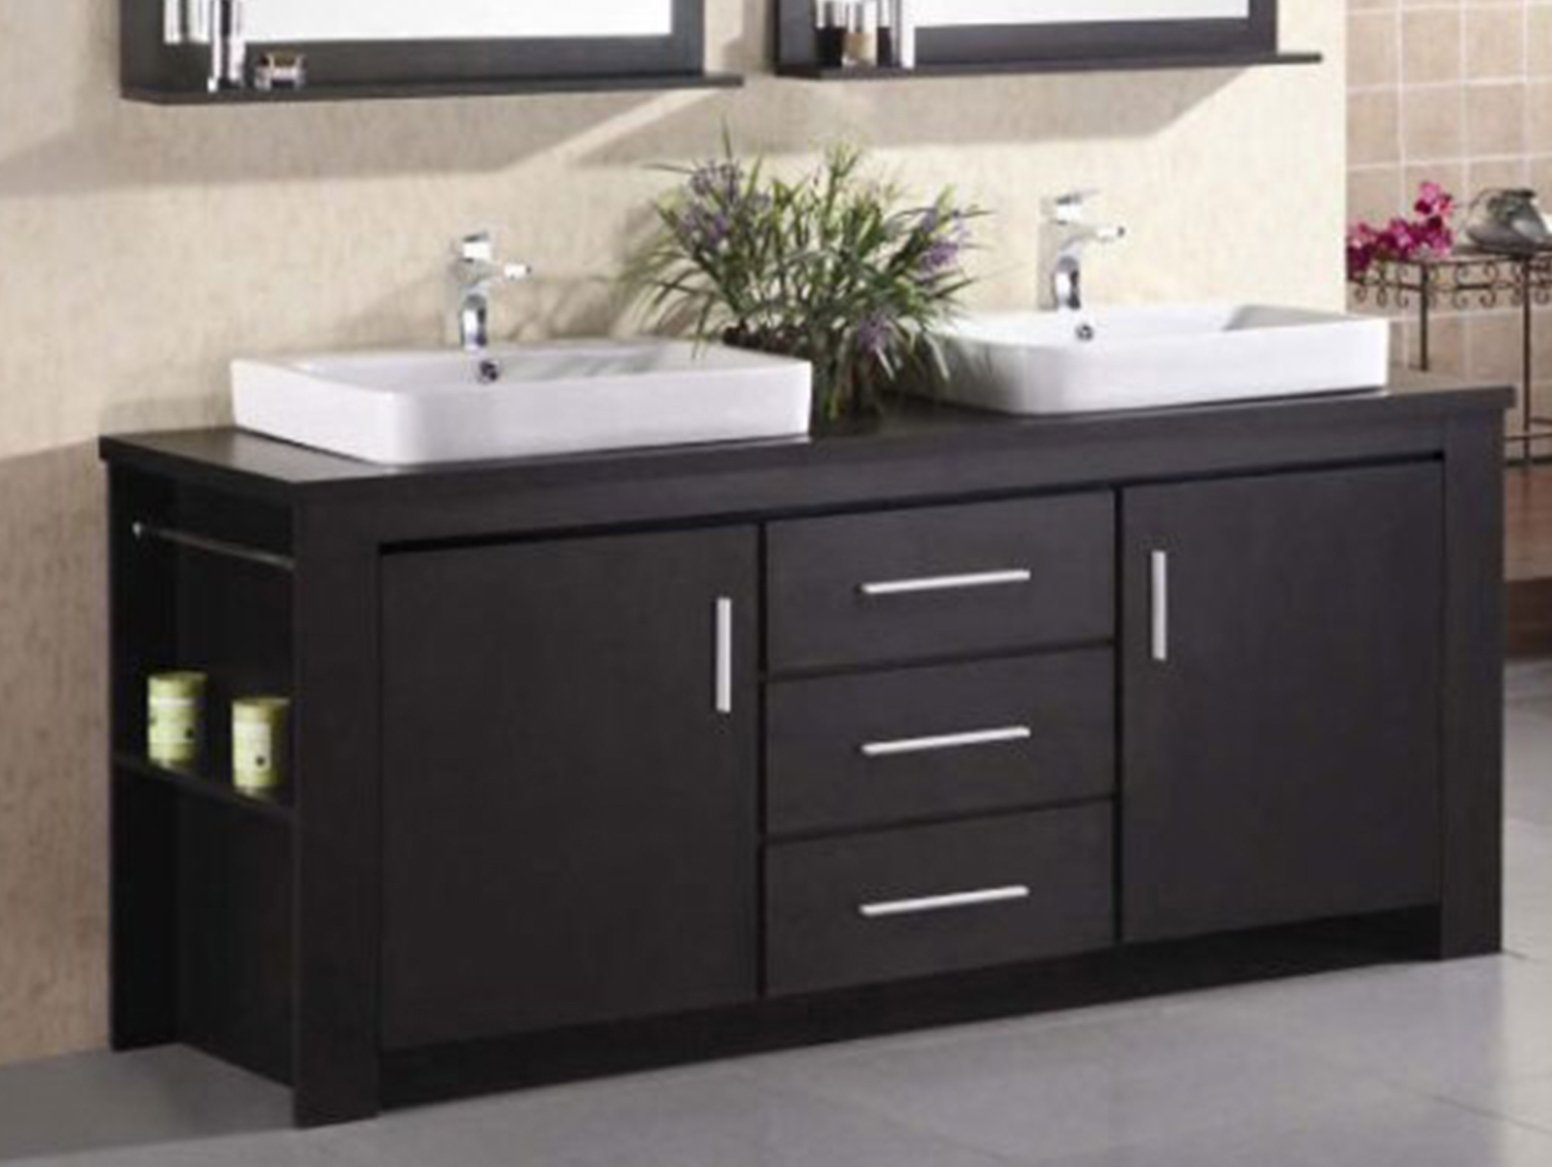 Design Element Washington Double Drop-In Vessel Sink Vanity Set with Three Drawers and Espresso Finish, 72-Inch